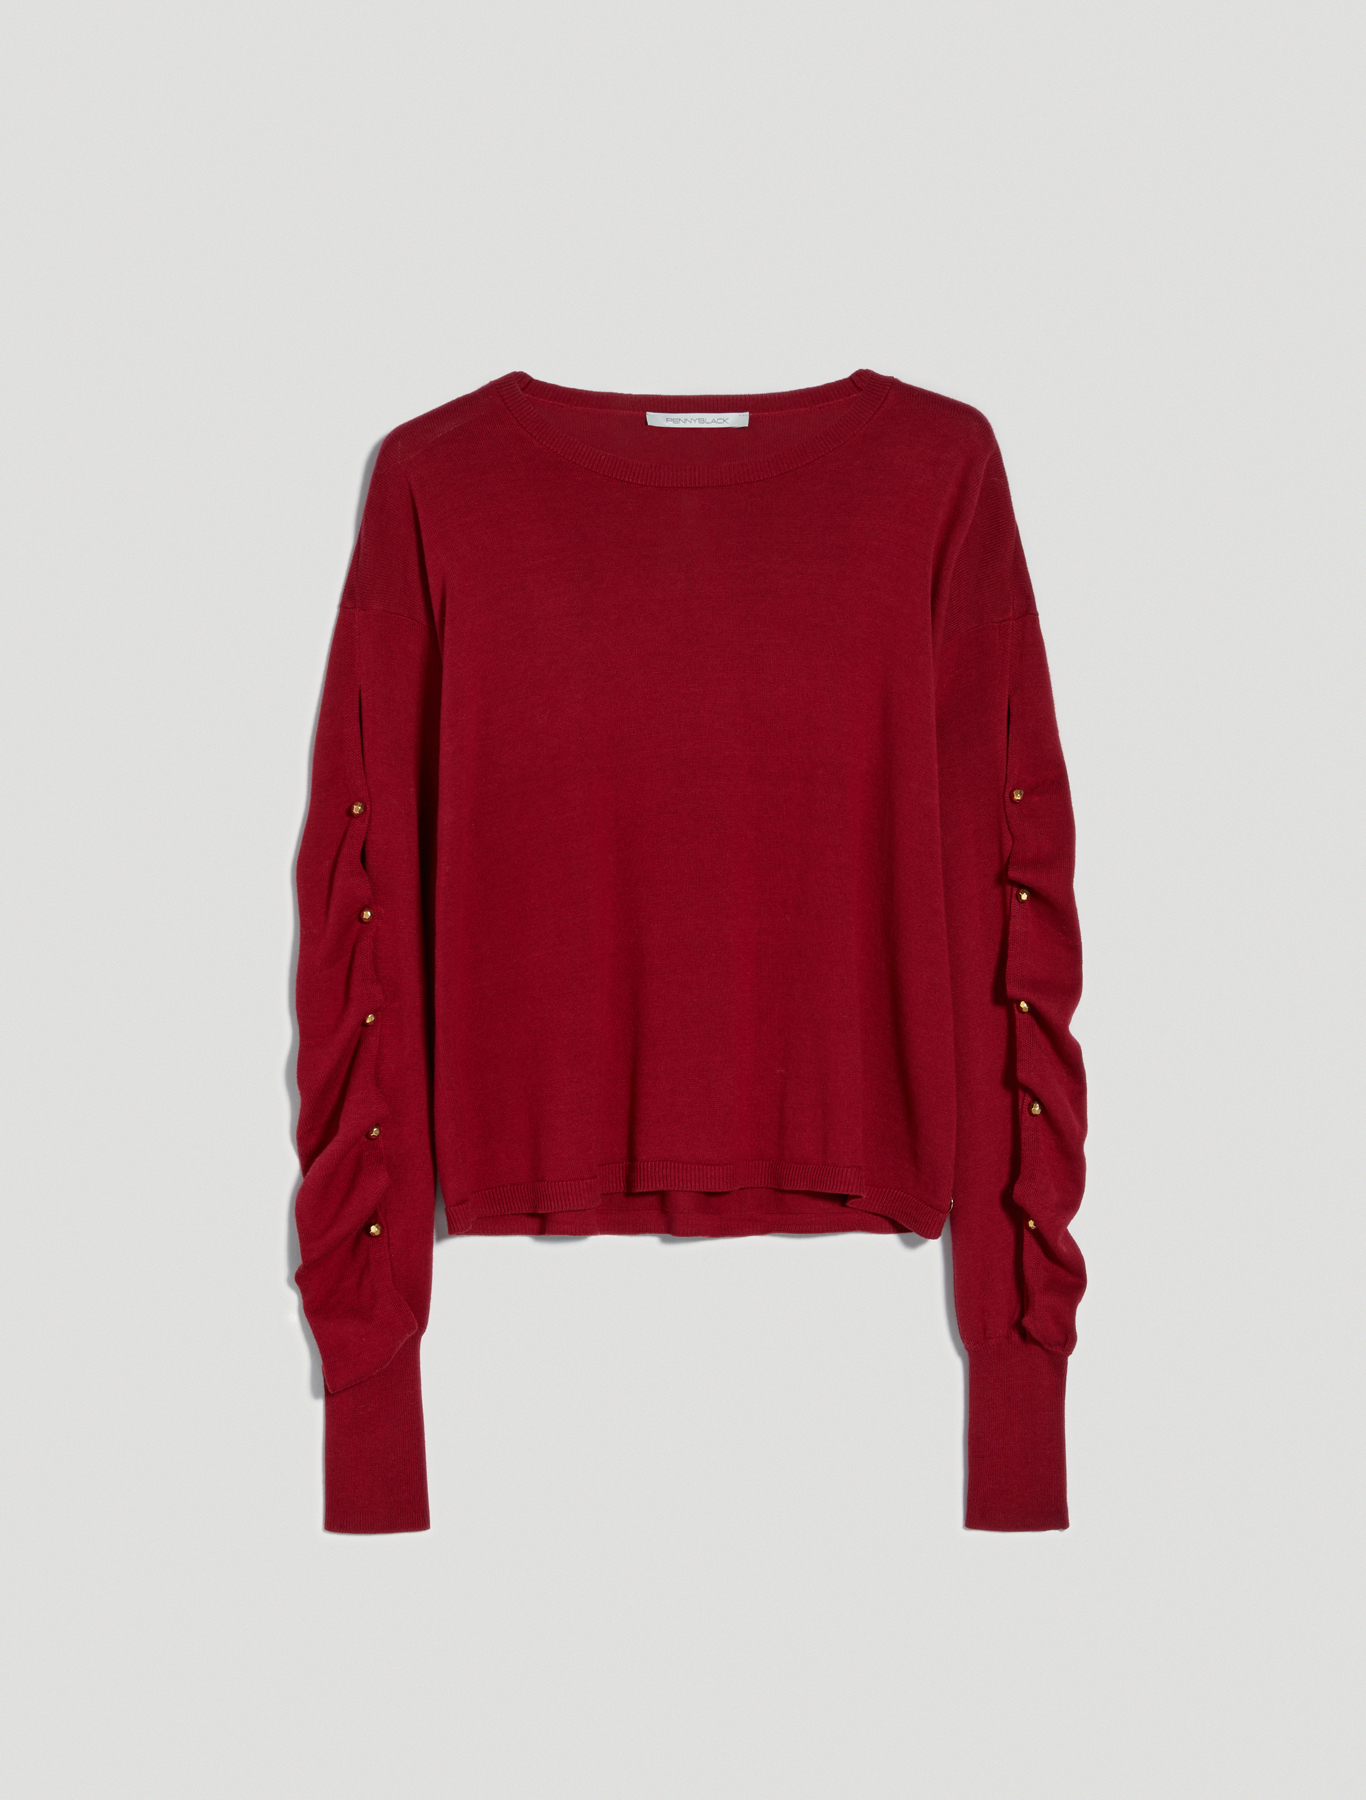 Jumper with draped sleeves - red - pennyblack